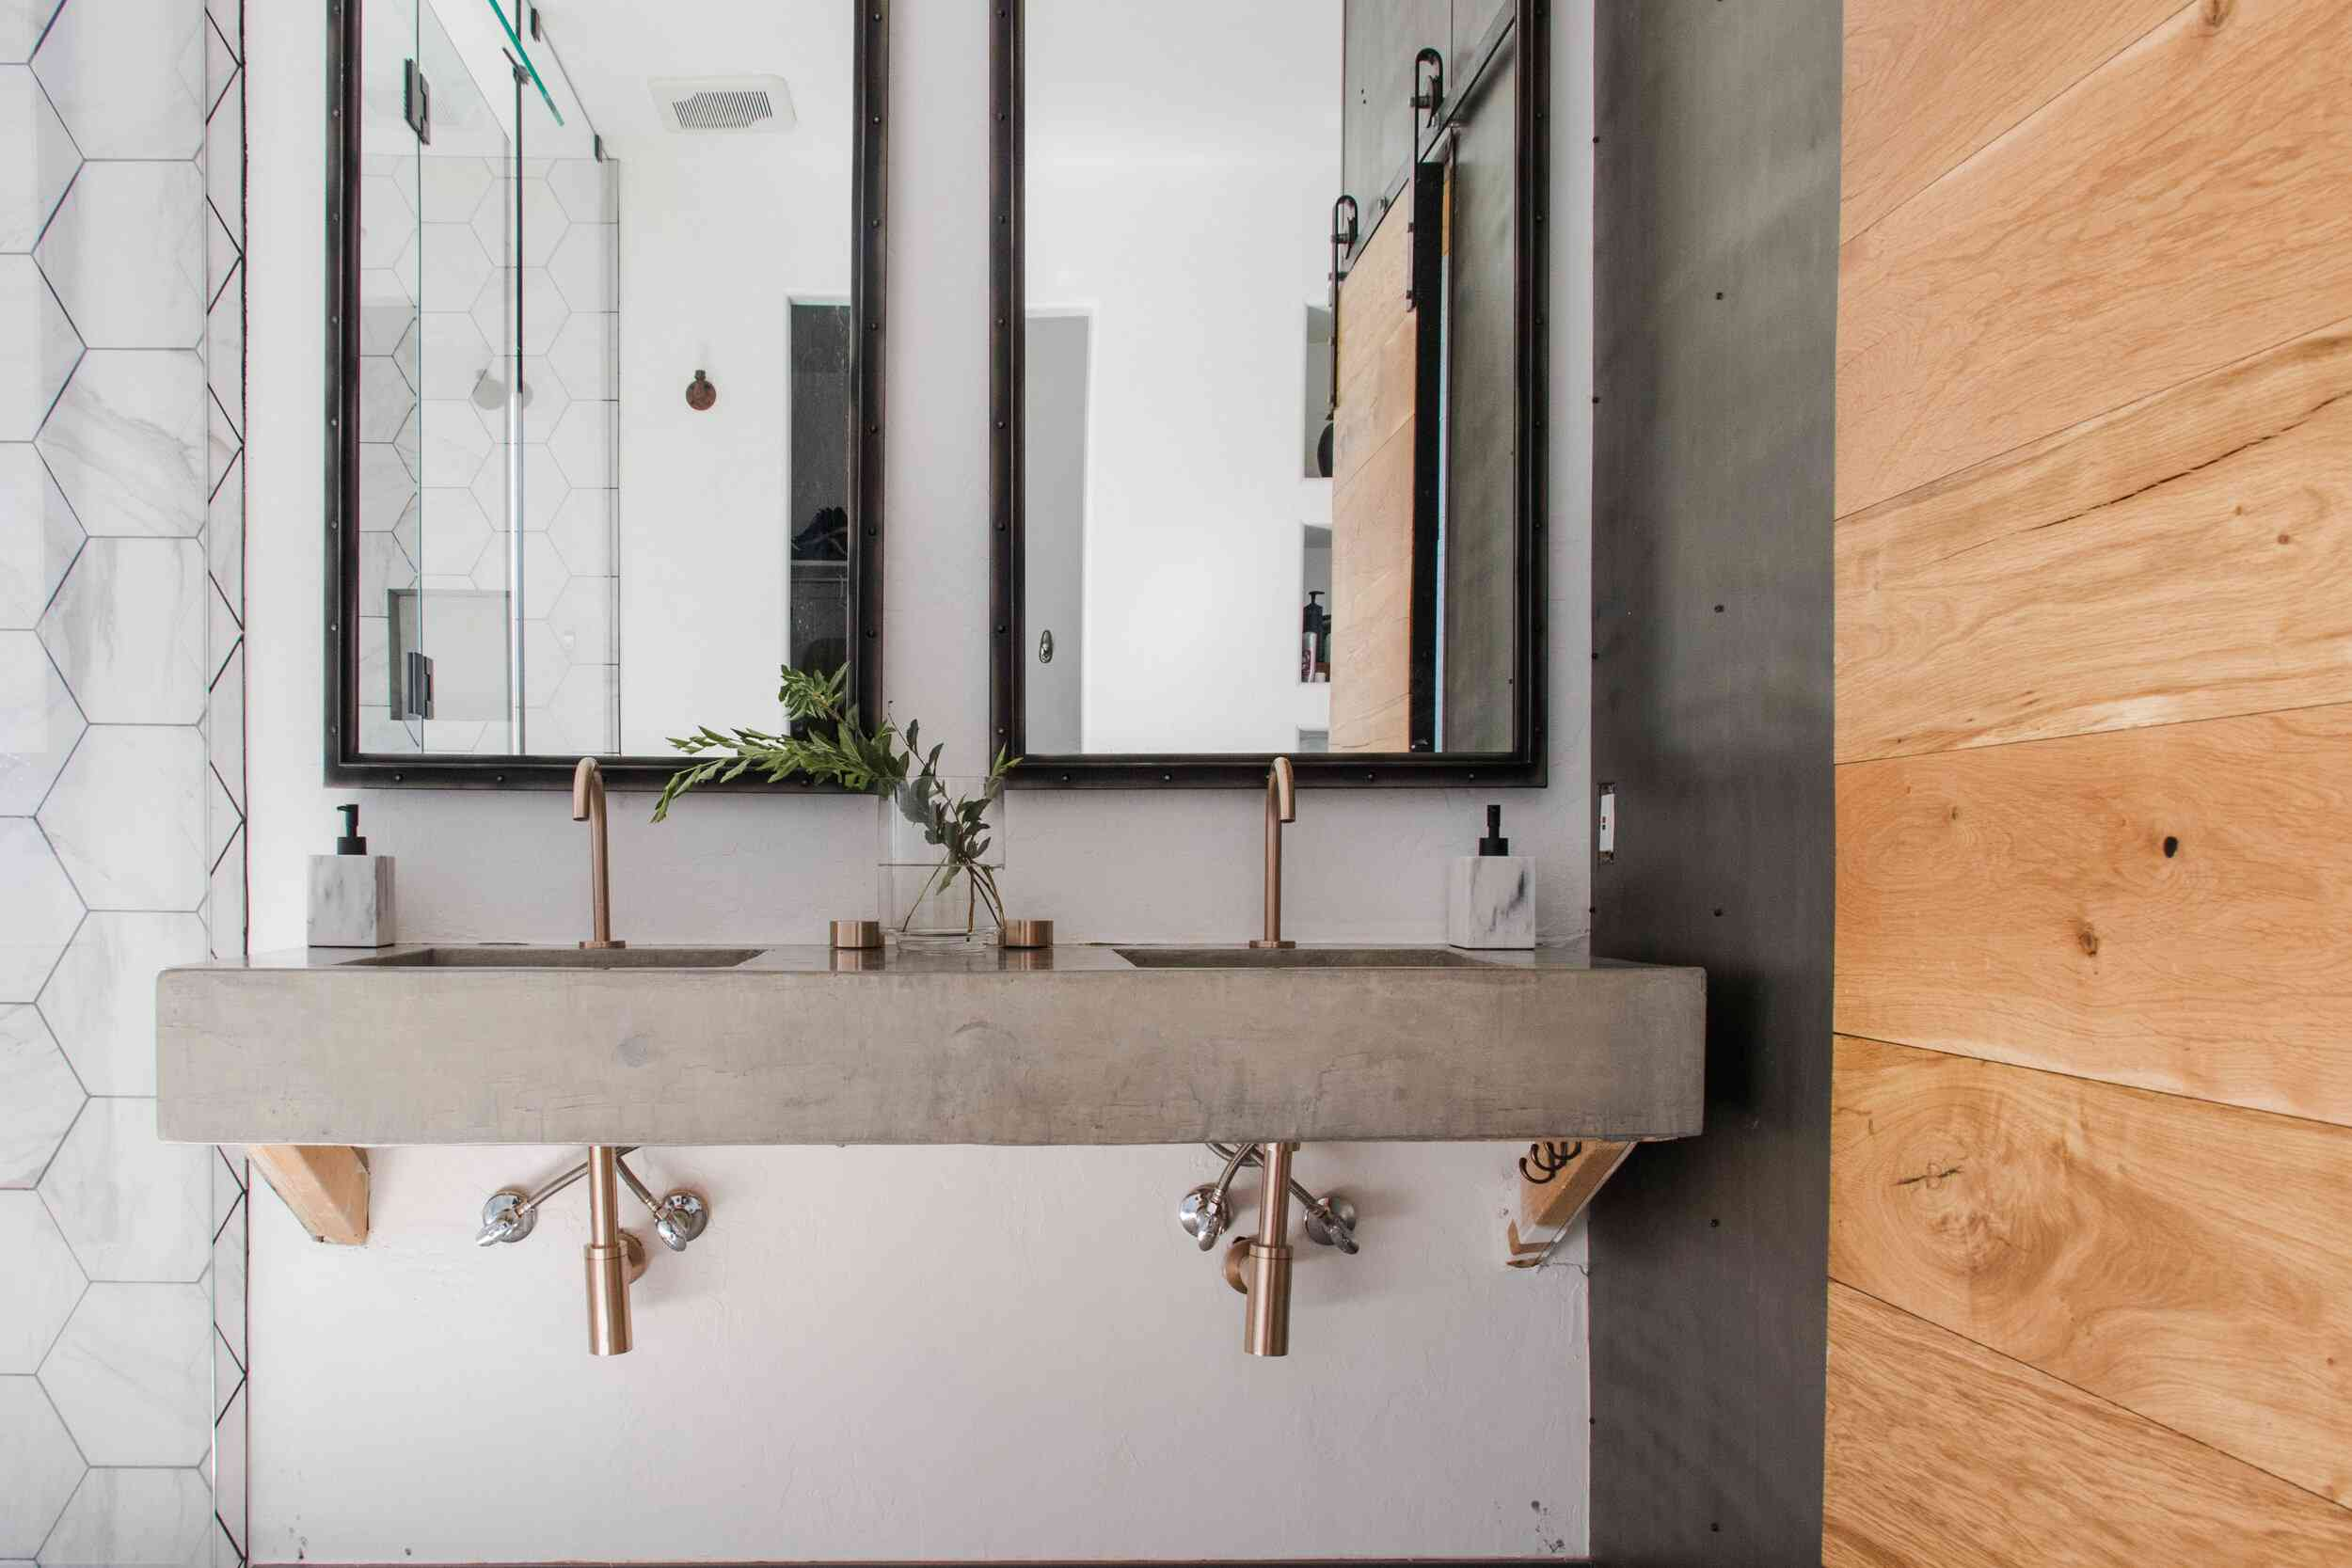 A bathroom with a concrete wall-mounted sink